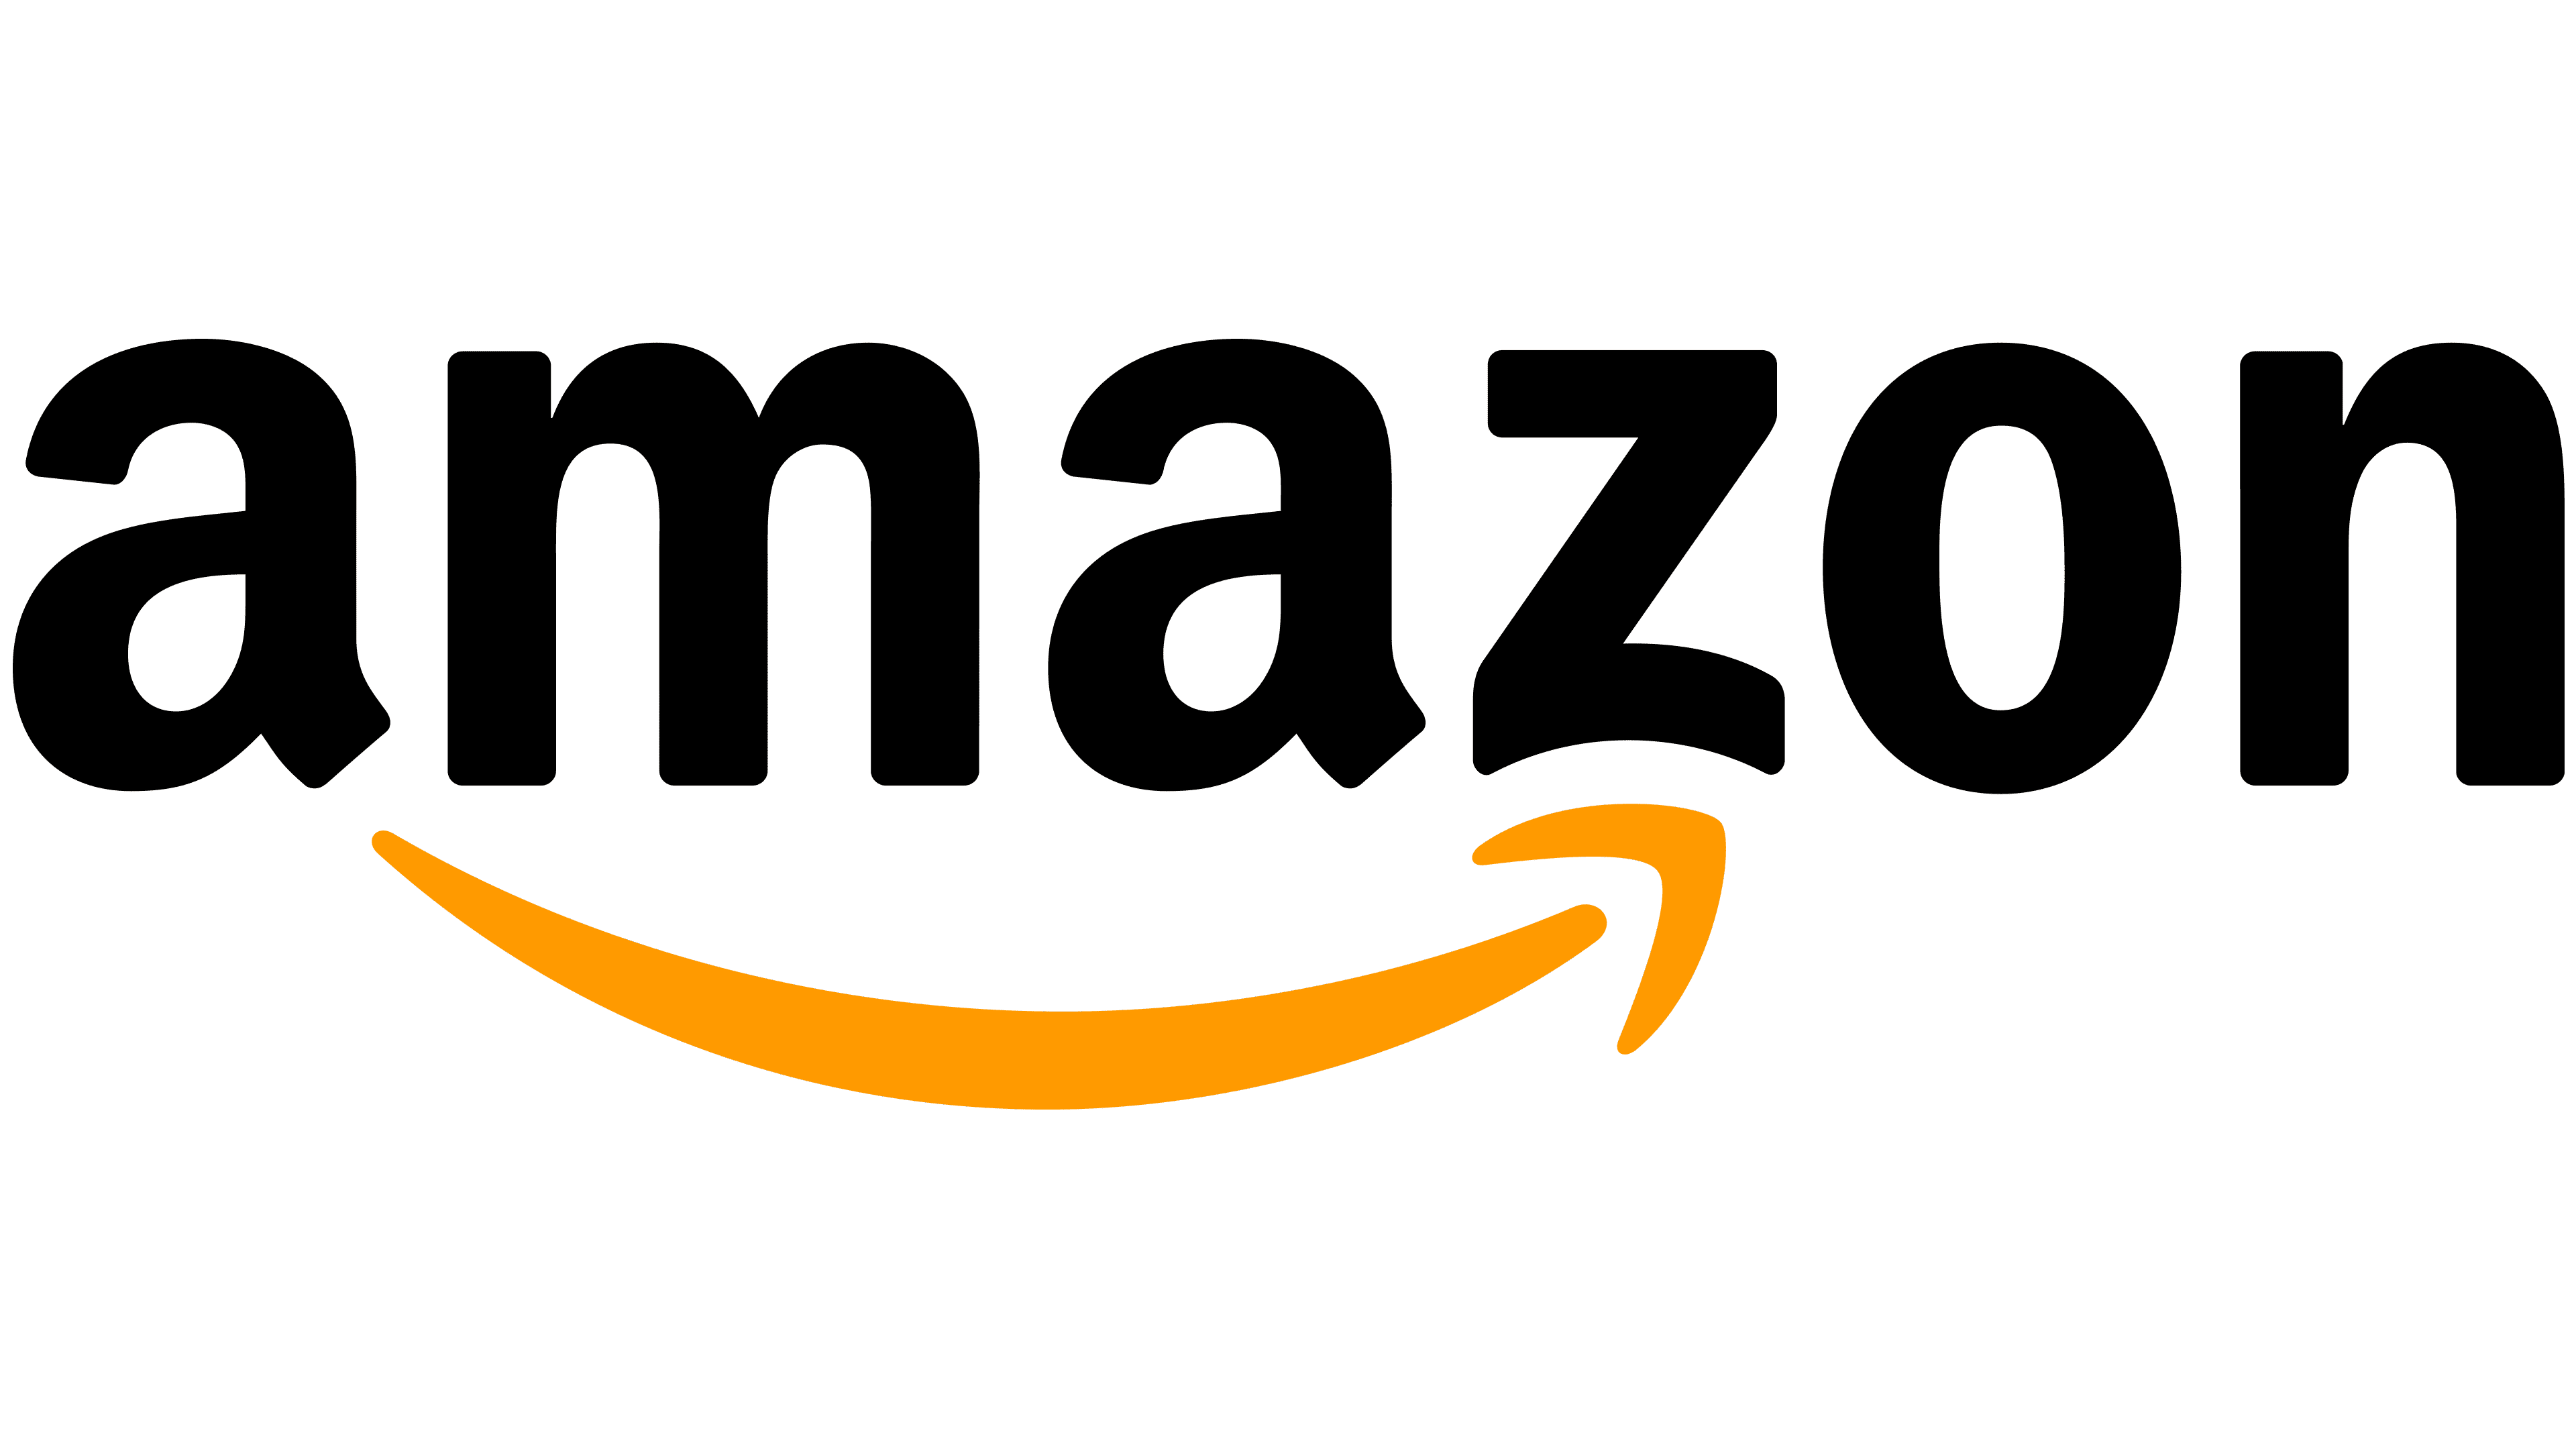 Amazon Logo | The most famous brands and company logos in the world